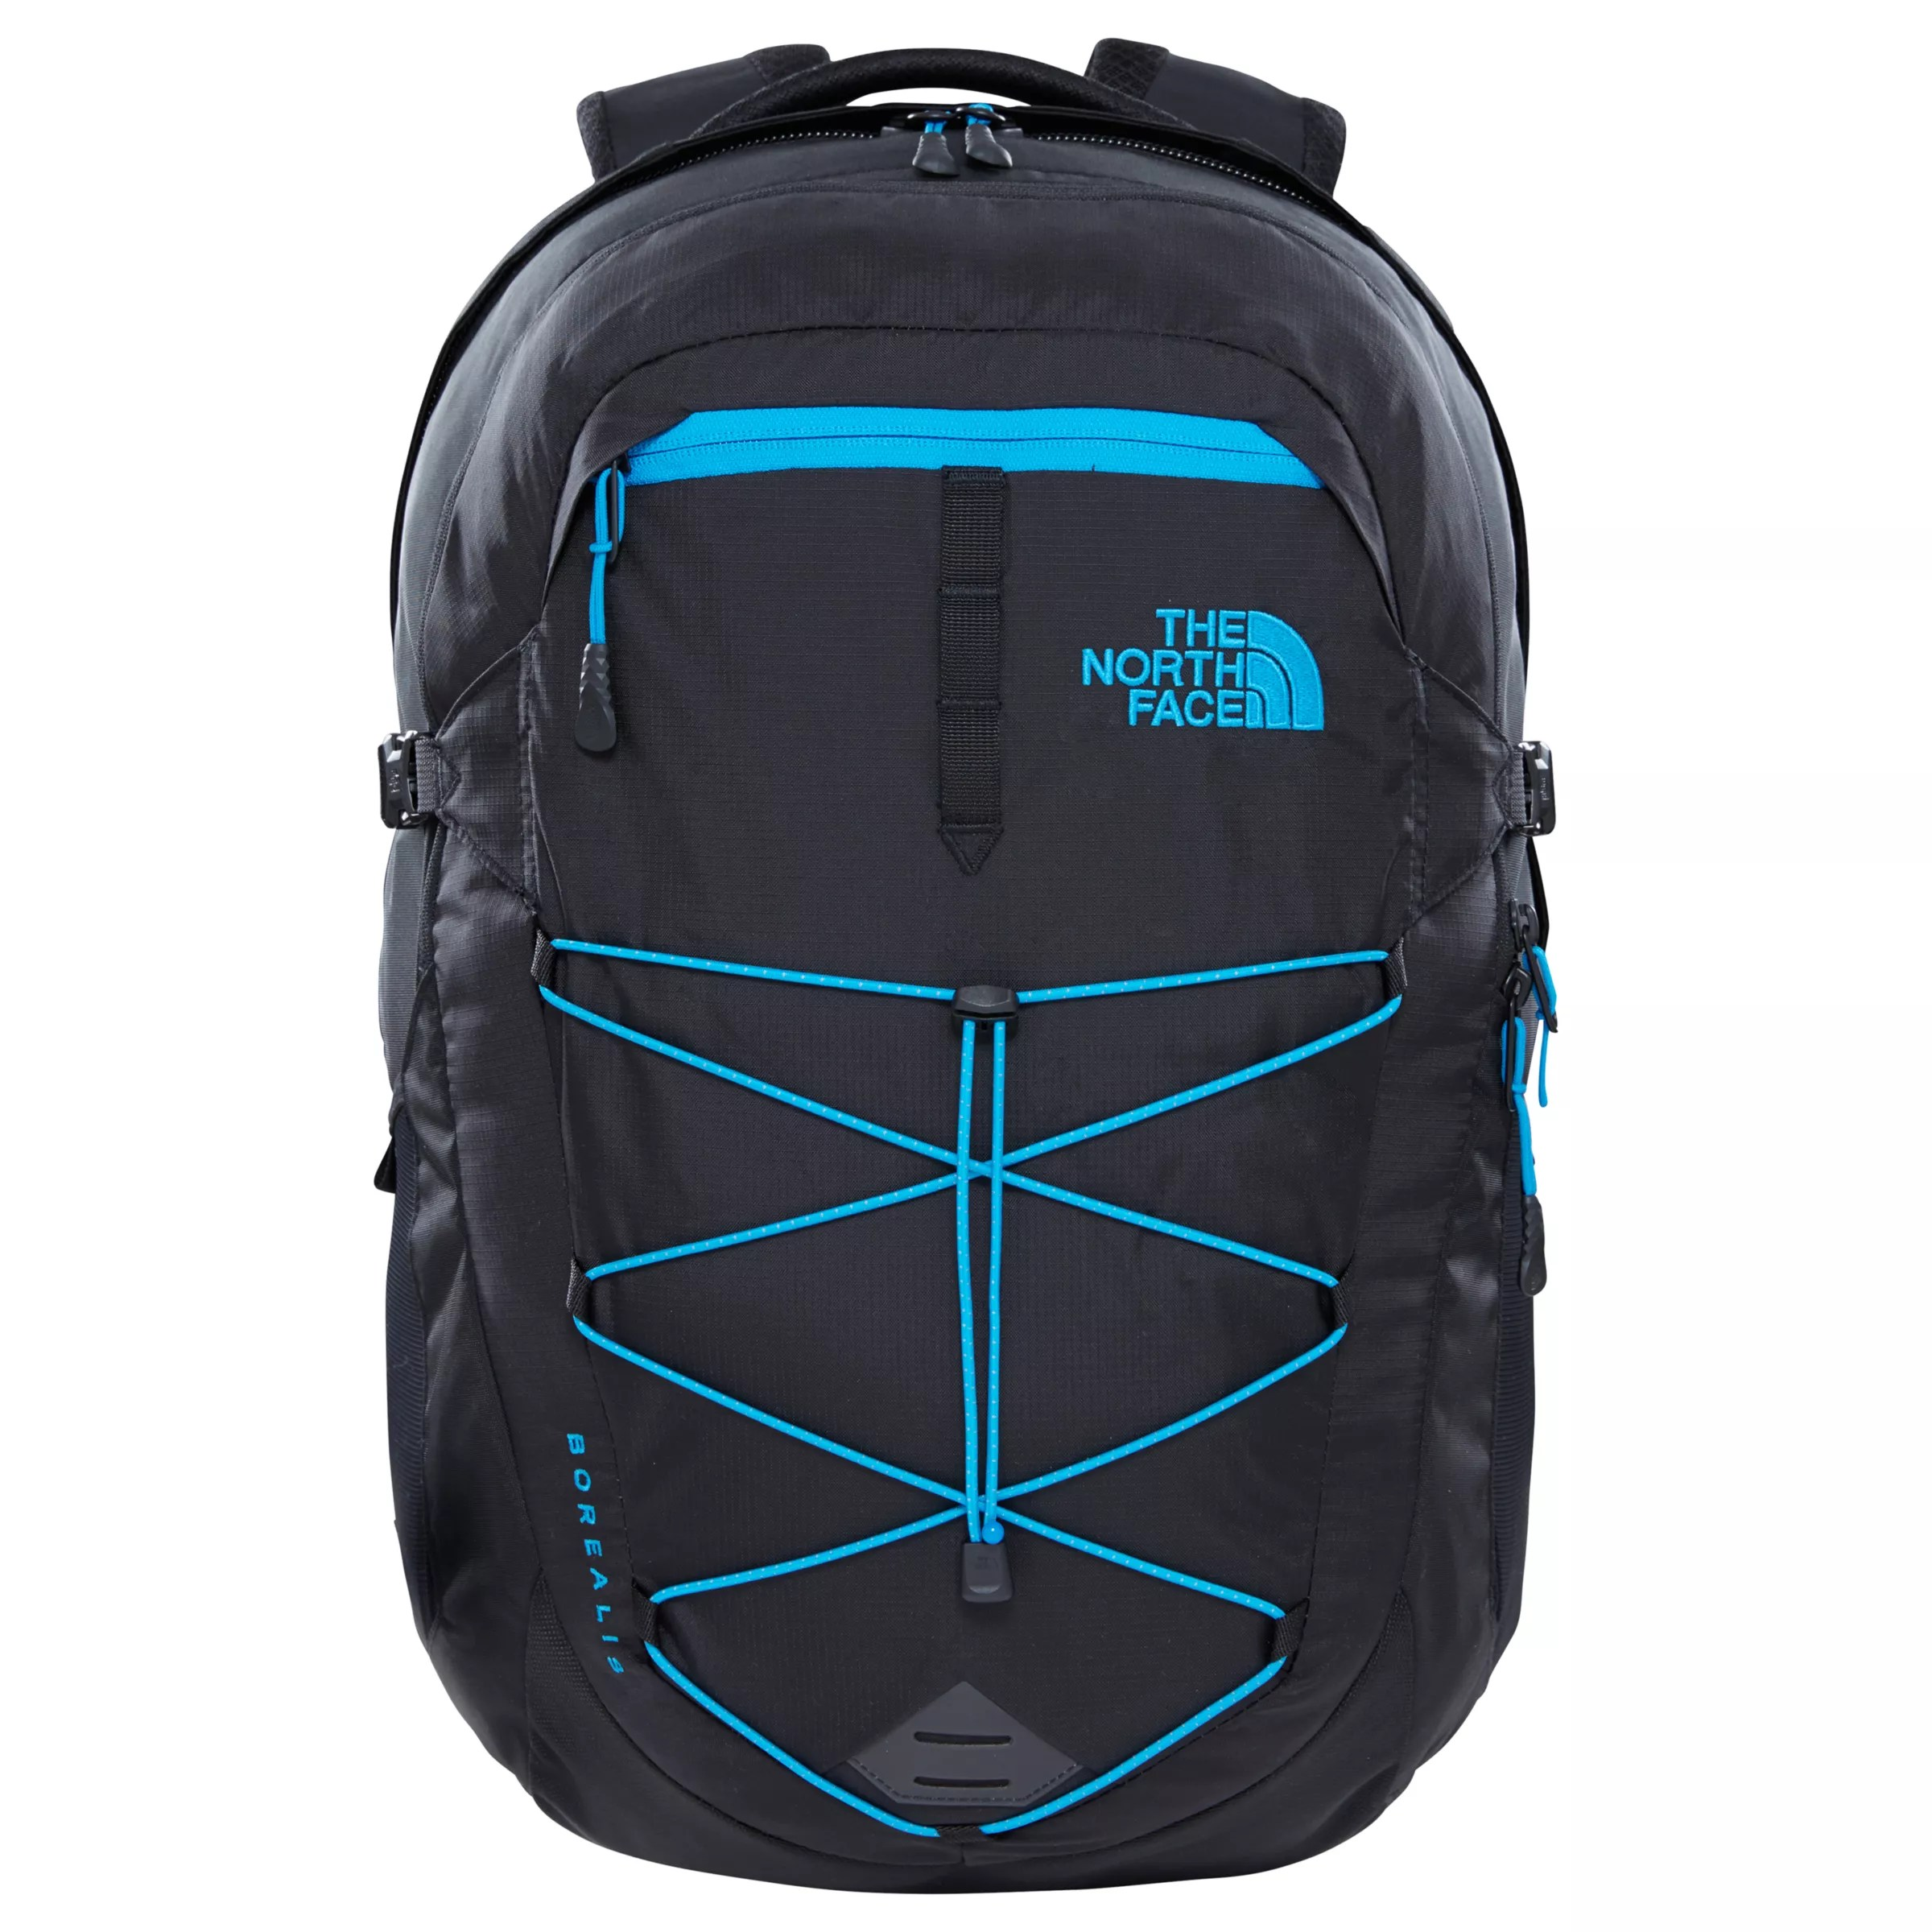 Baby Bags John Lewis The North Face Borealis Backpack Black Blue At John Lewis